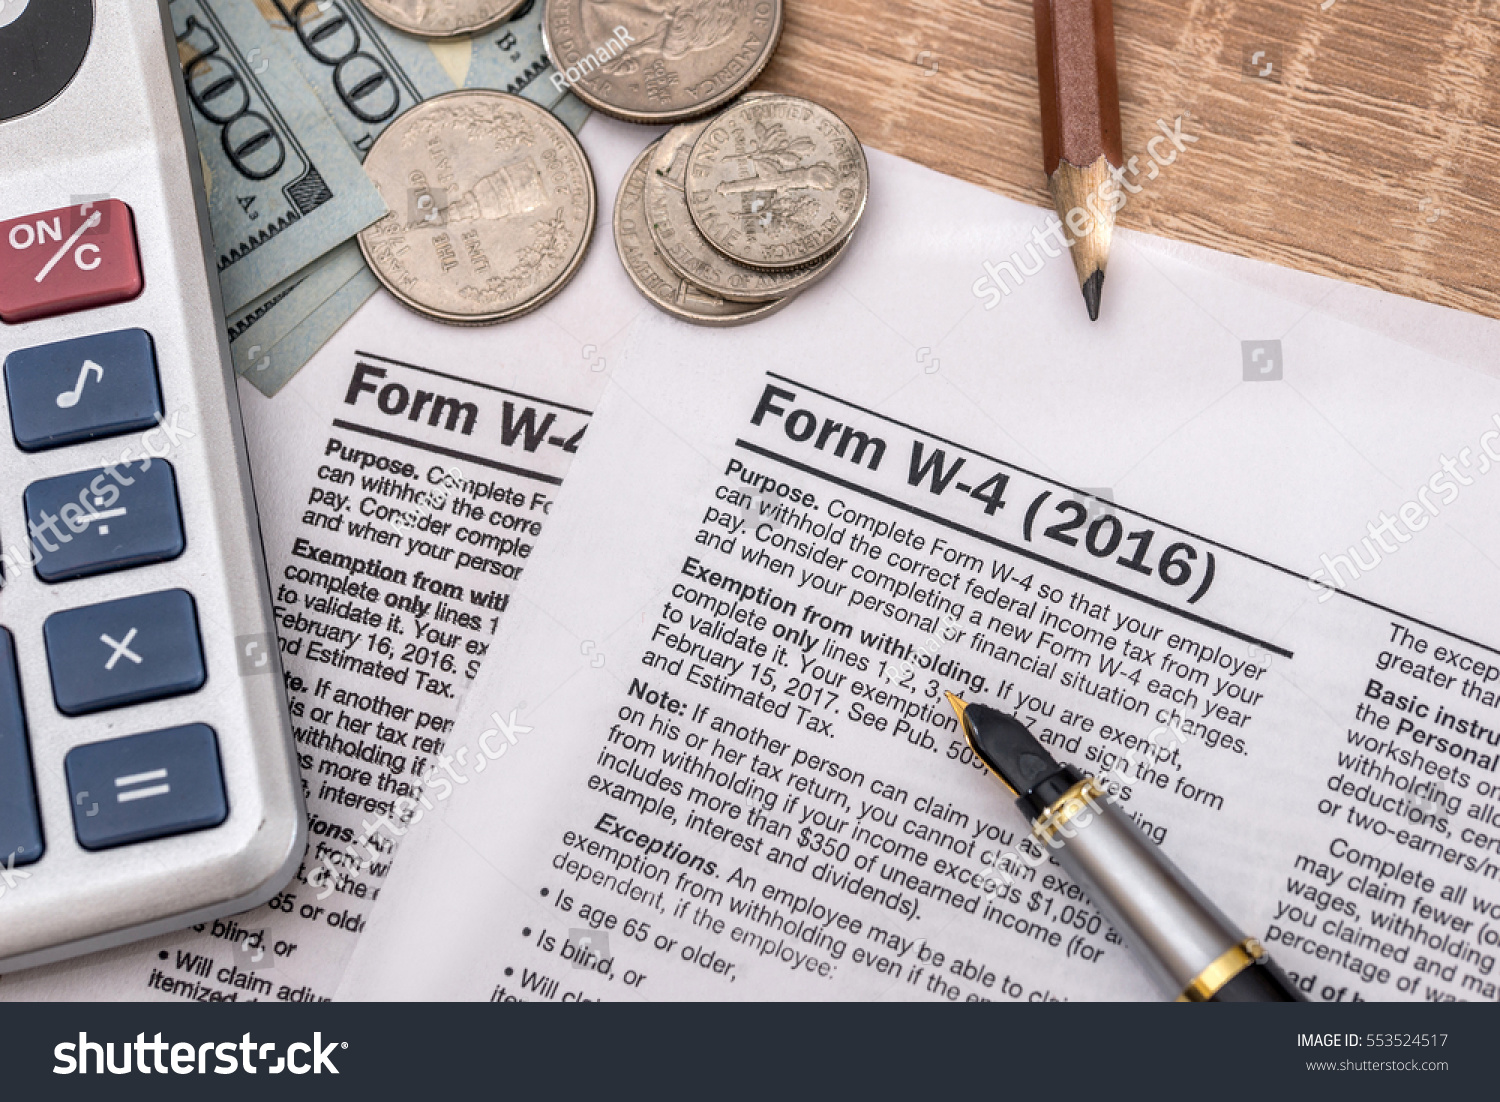 Tax Form W4 Pen Us Dollar Stock Photo 553524517 - Shutterstock